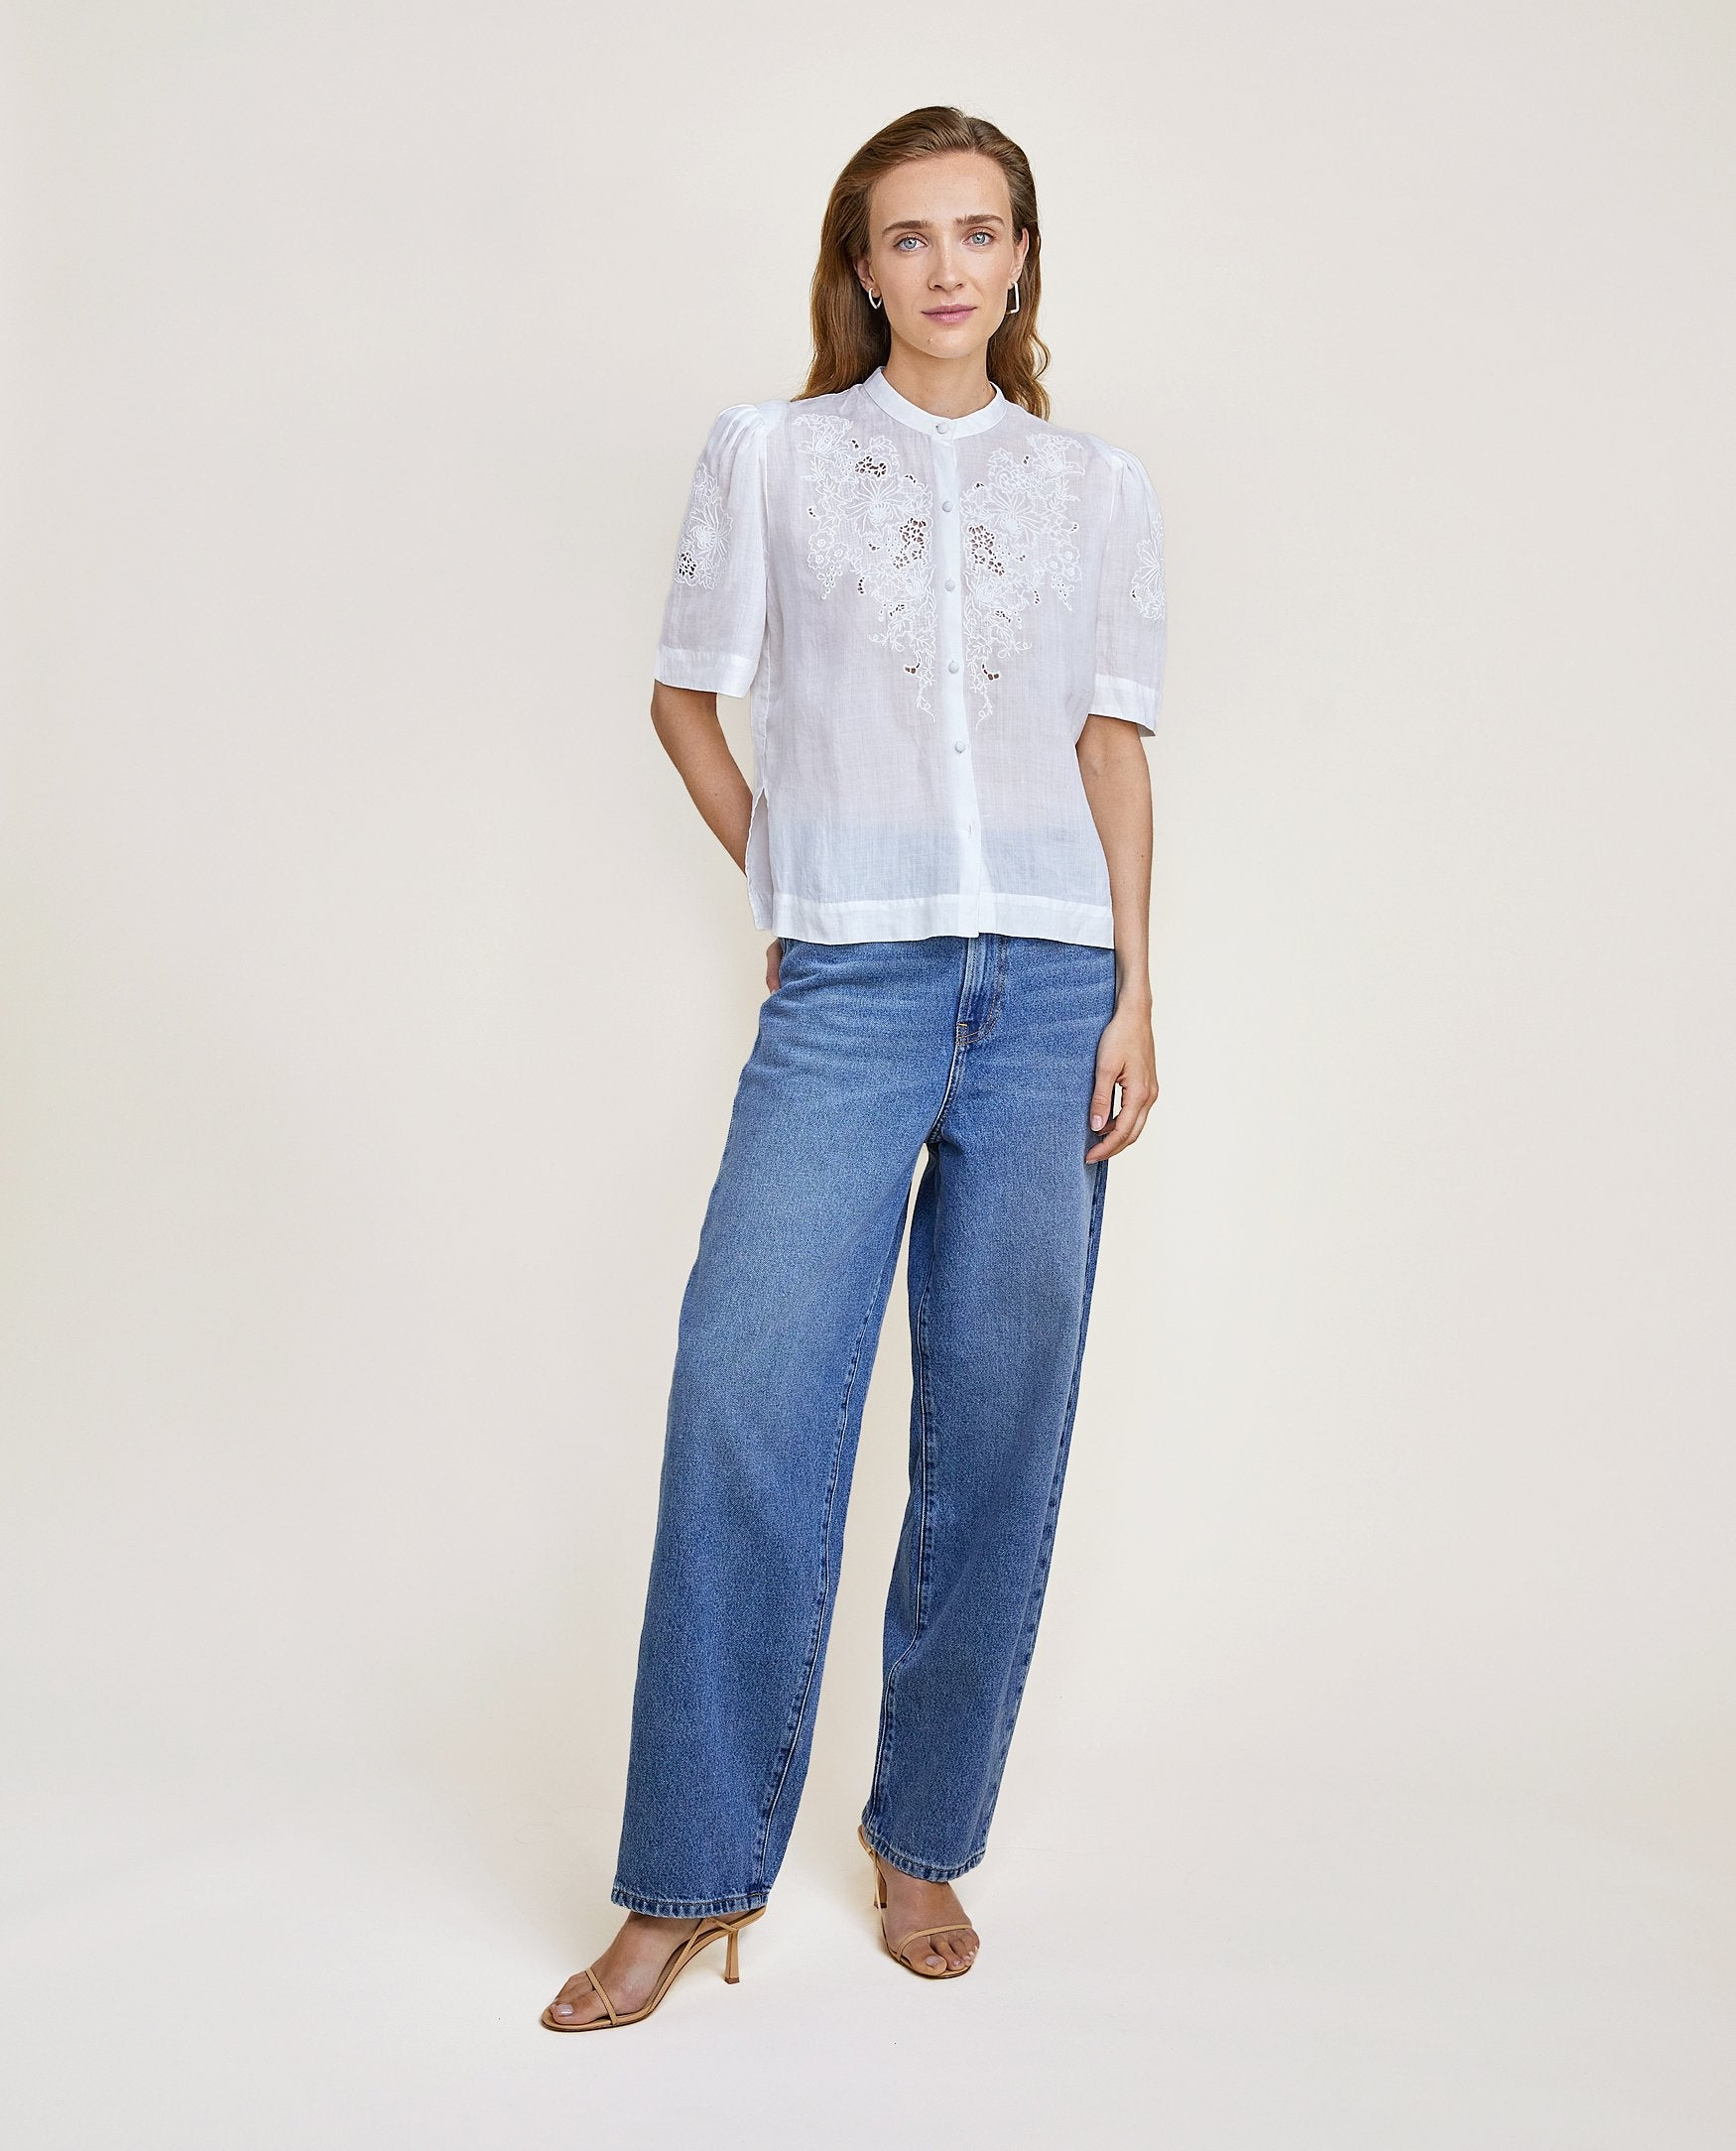 LCDP | Reina Blouse - Off White